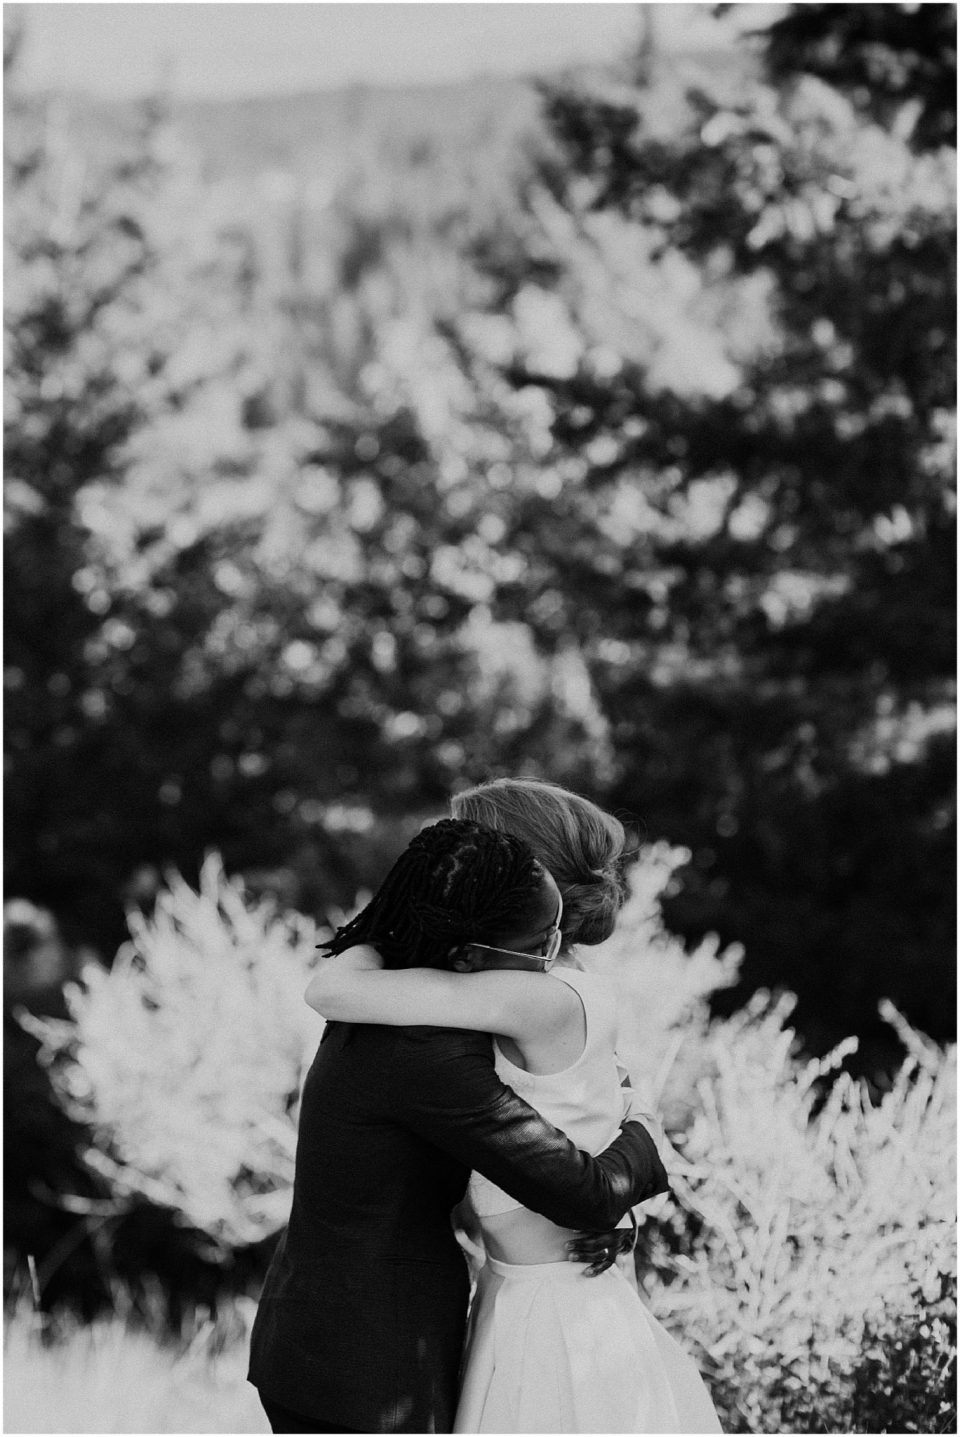 hollis-brittany-sullivan&sullivan-hoodriverwedding (29 of 54)_seattle wedding.jpg